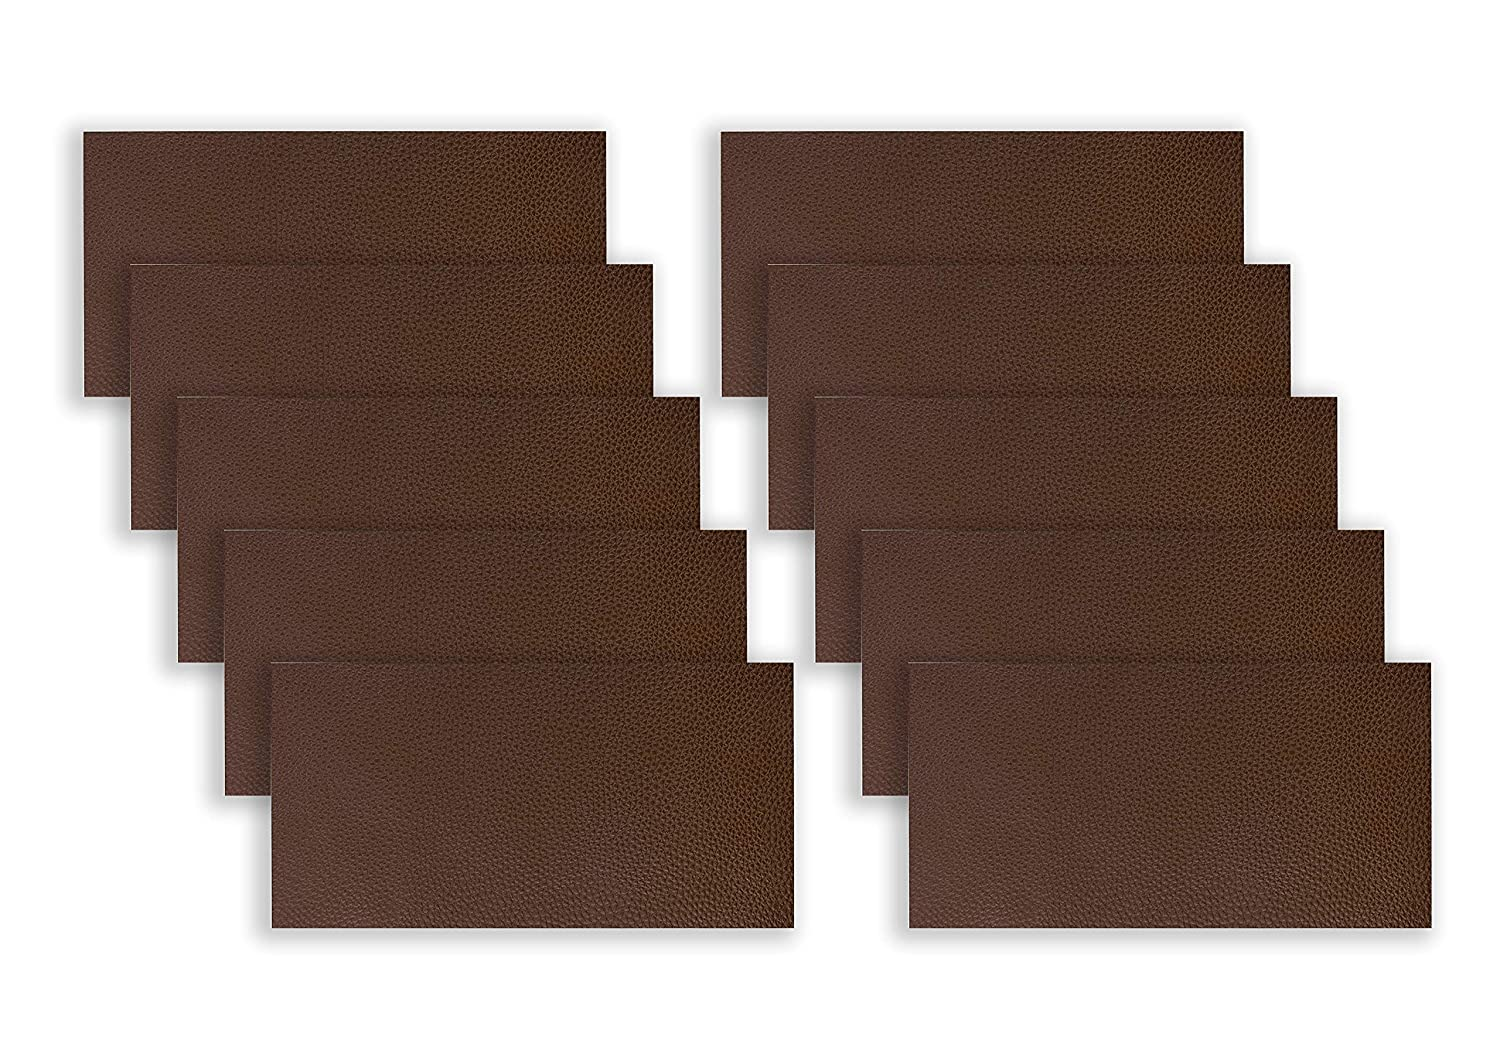 10 pièces Patch de réparation pour cuir, 10,2 x 20,3 cm Cuir adhésif kit pour canapé meubles Canapé sièges auto vestes de sacs à main Drak Brown  Leather Repair Patch